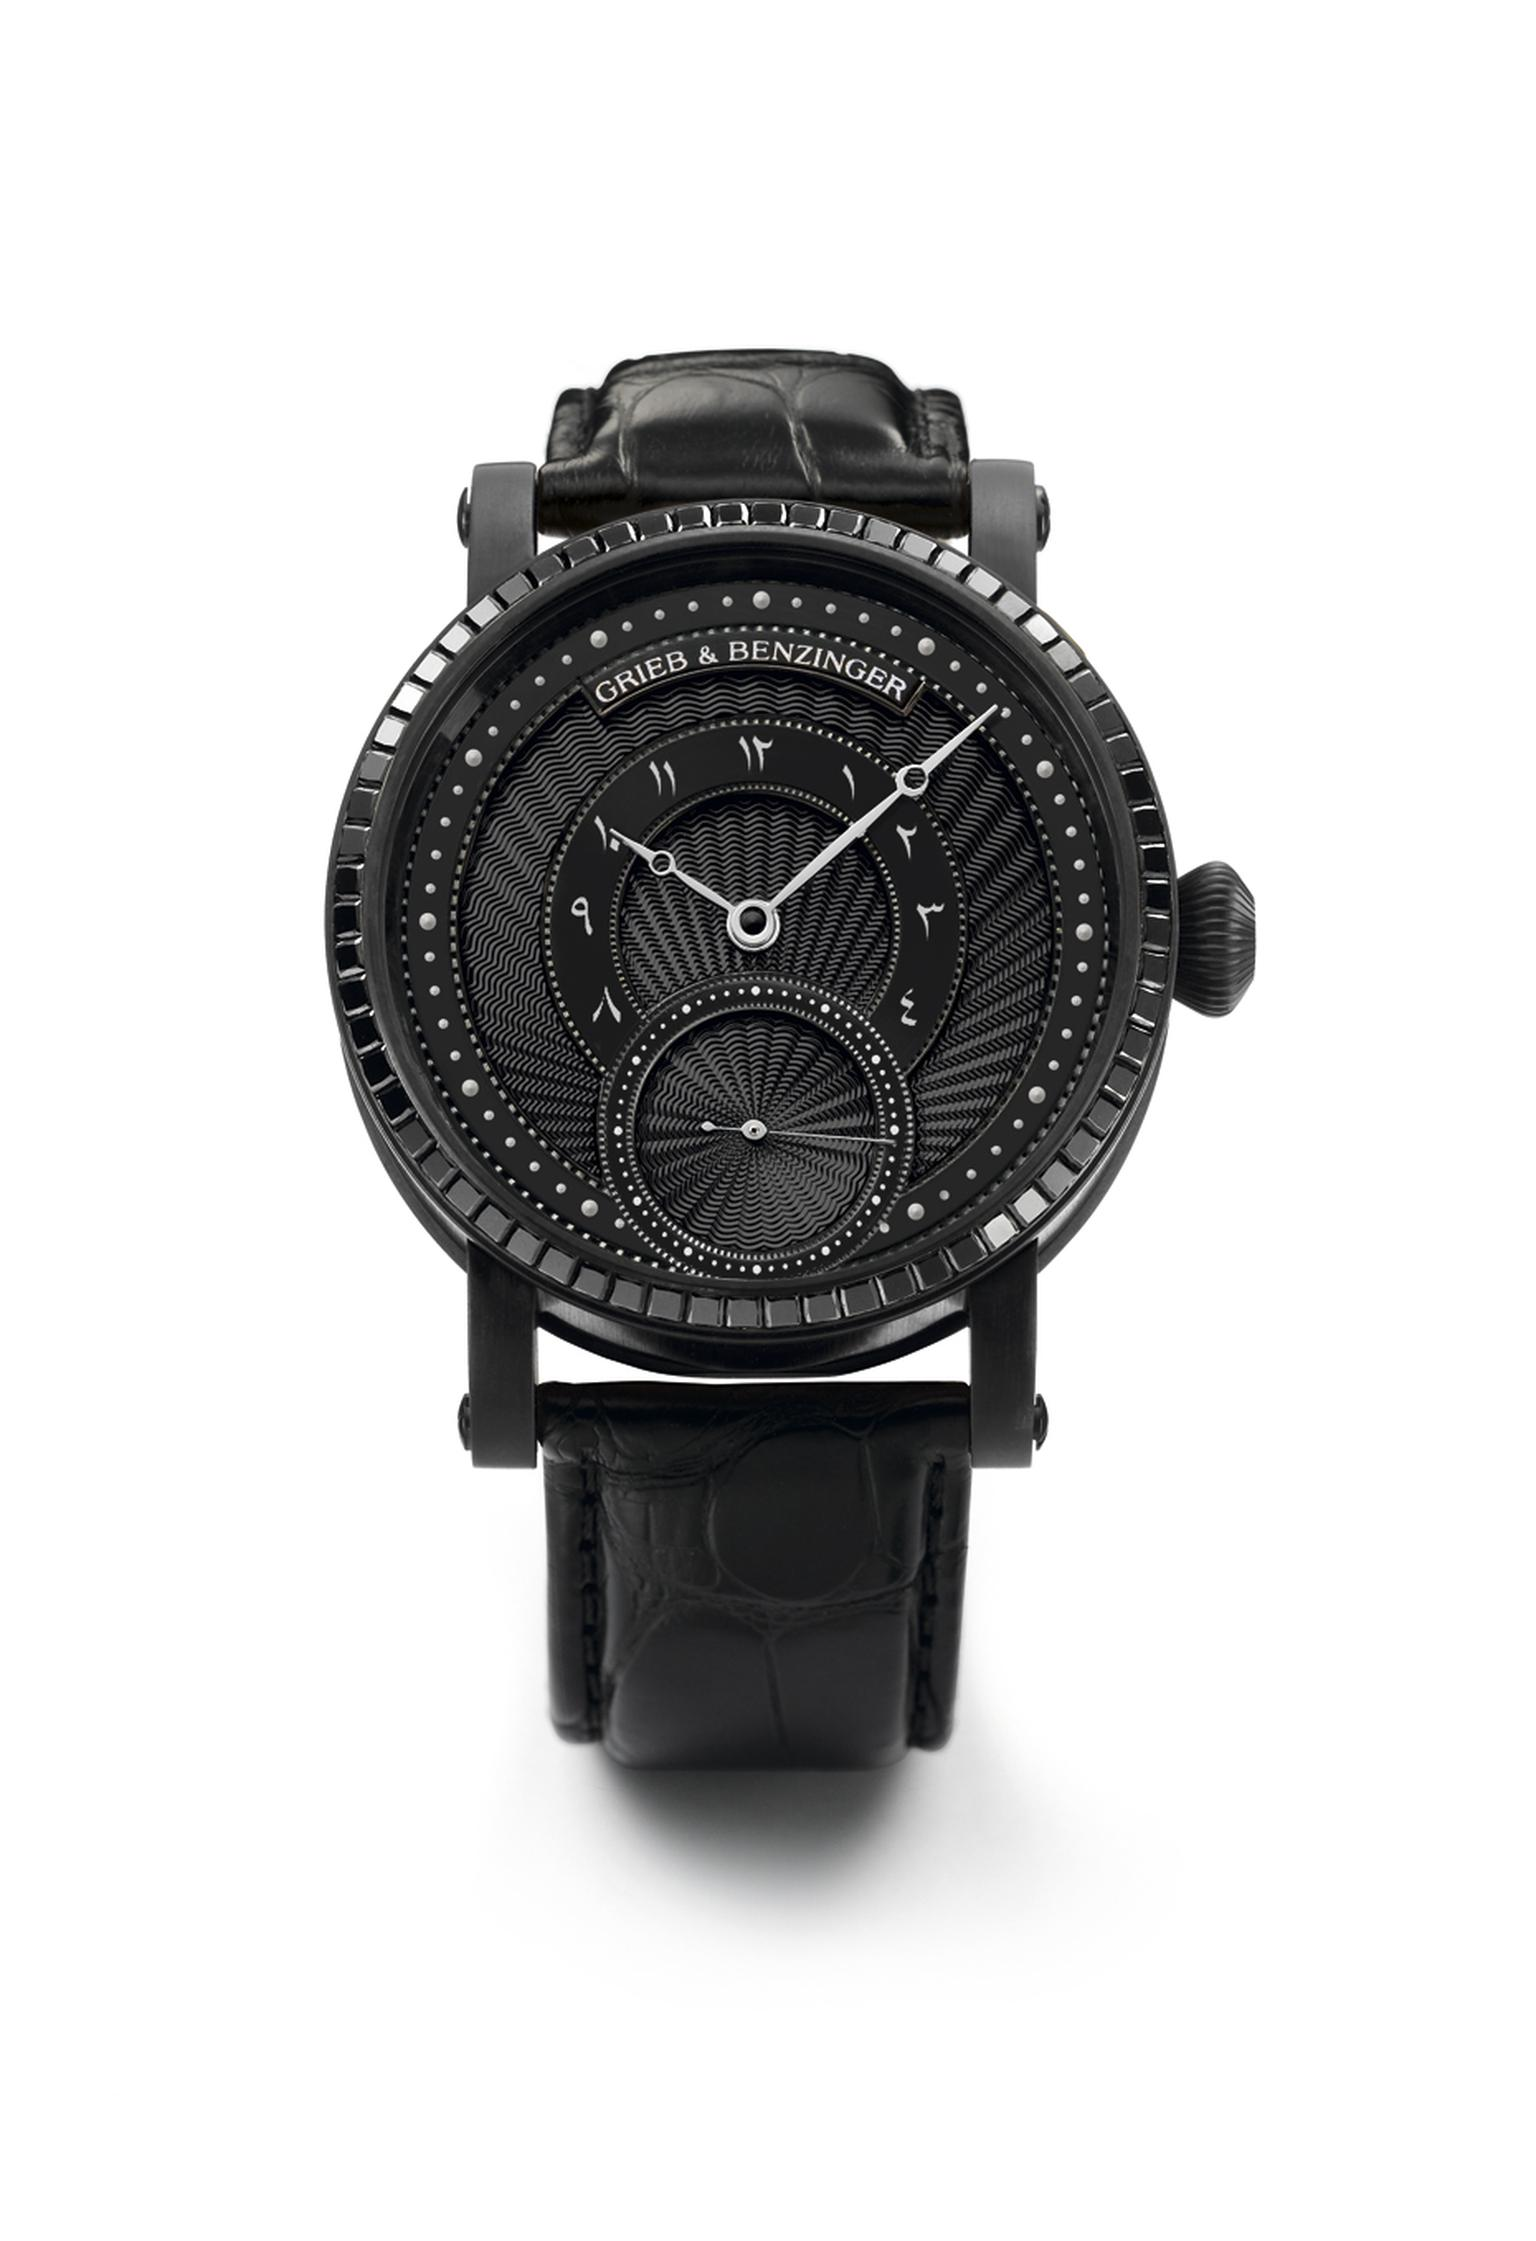 Dark sophistication: black on black watches for men